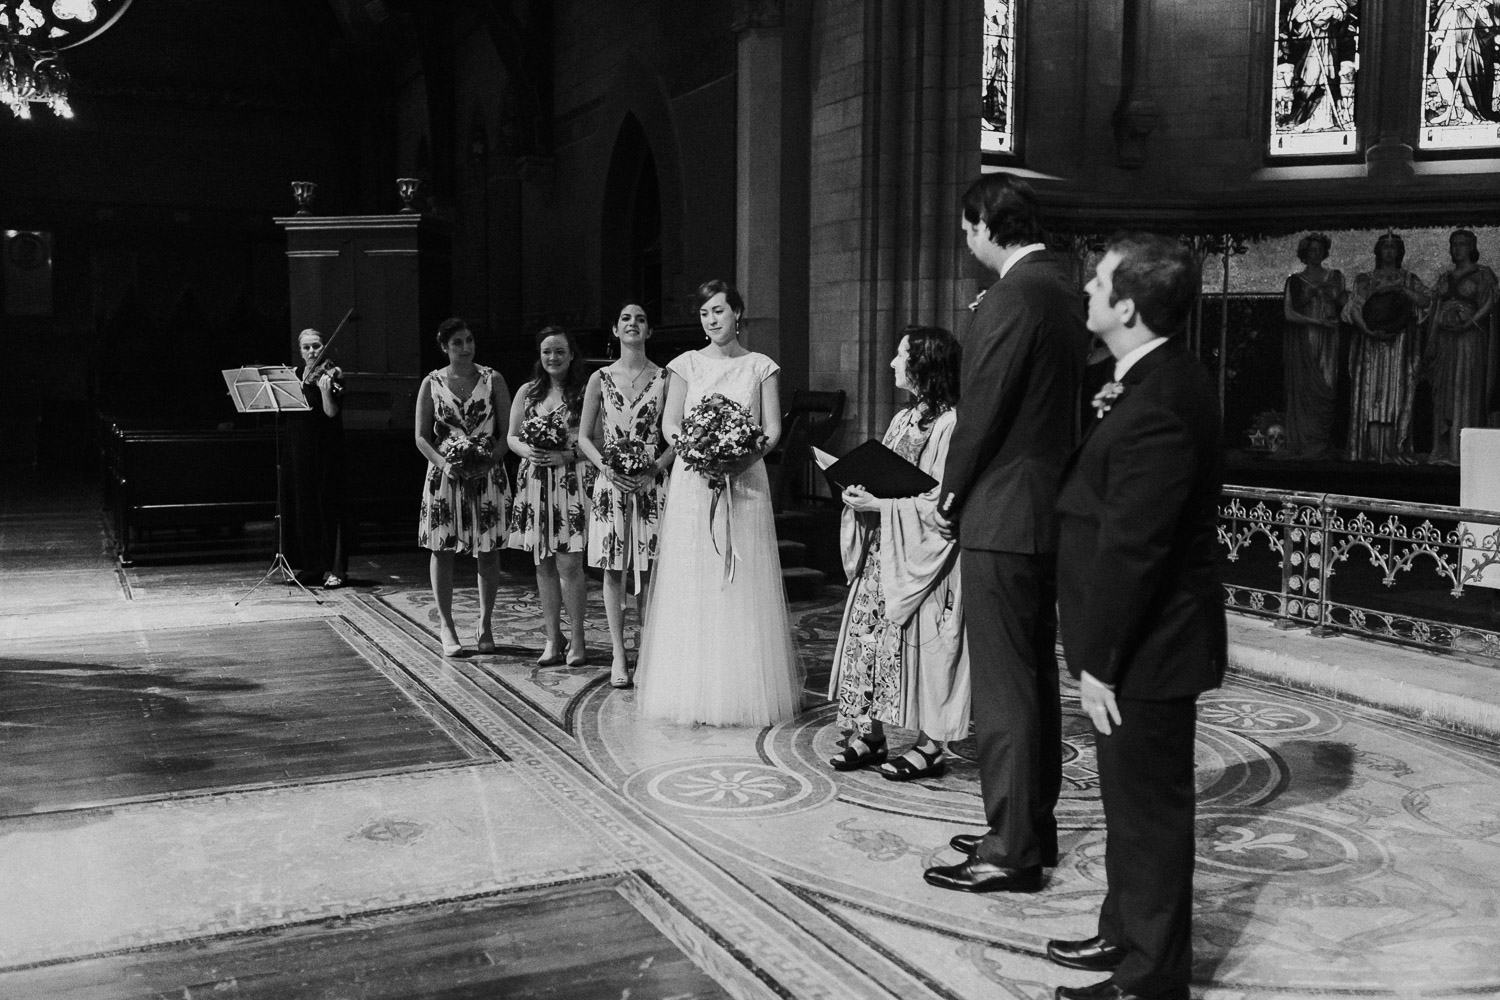 Sage_chapel_New_York_Wedding_Jane_Ashwin (58 of 294).jpg